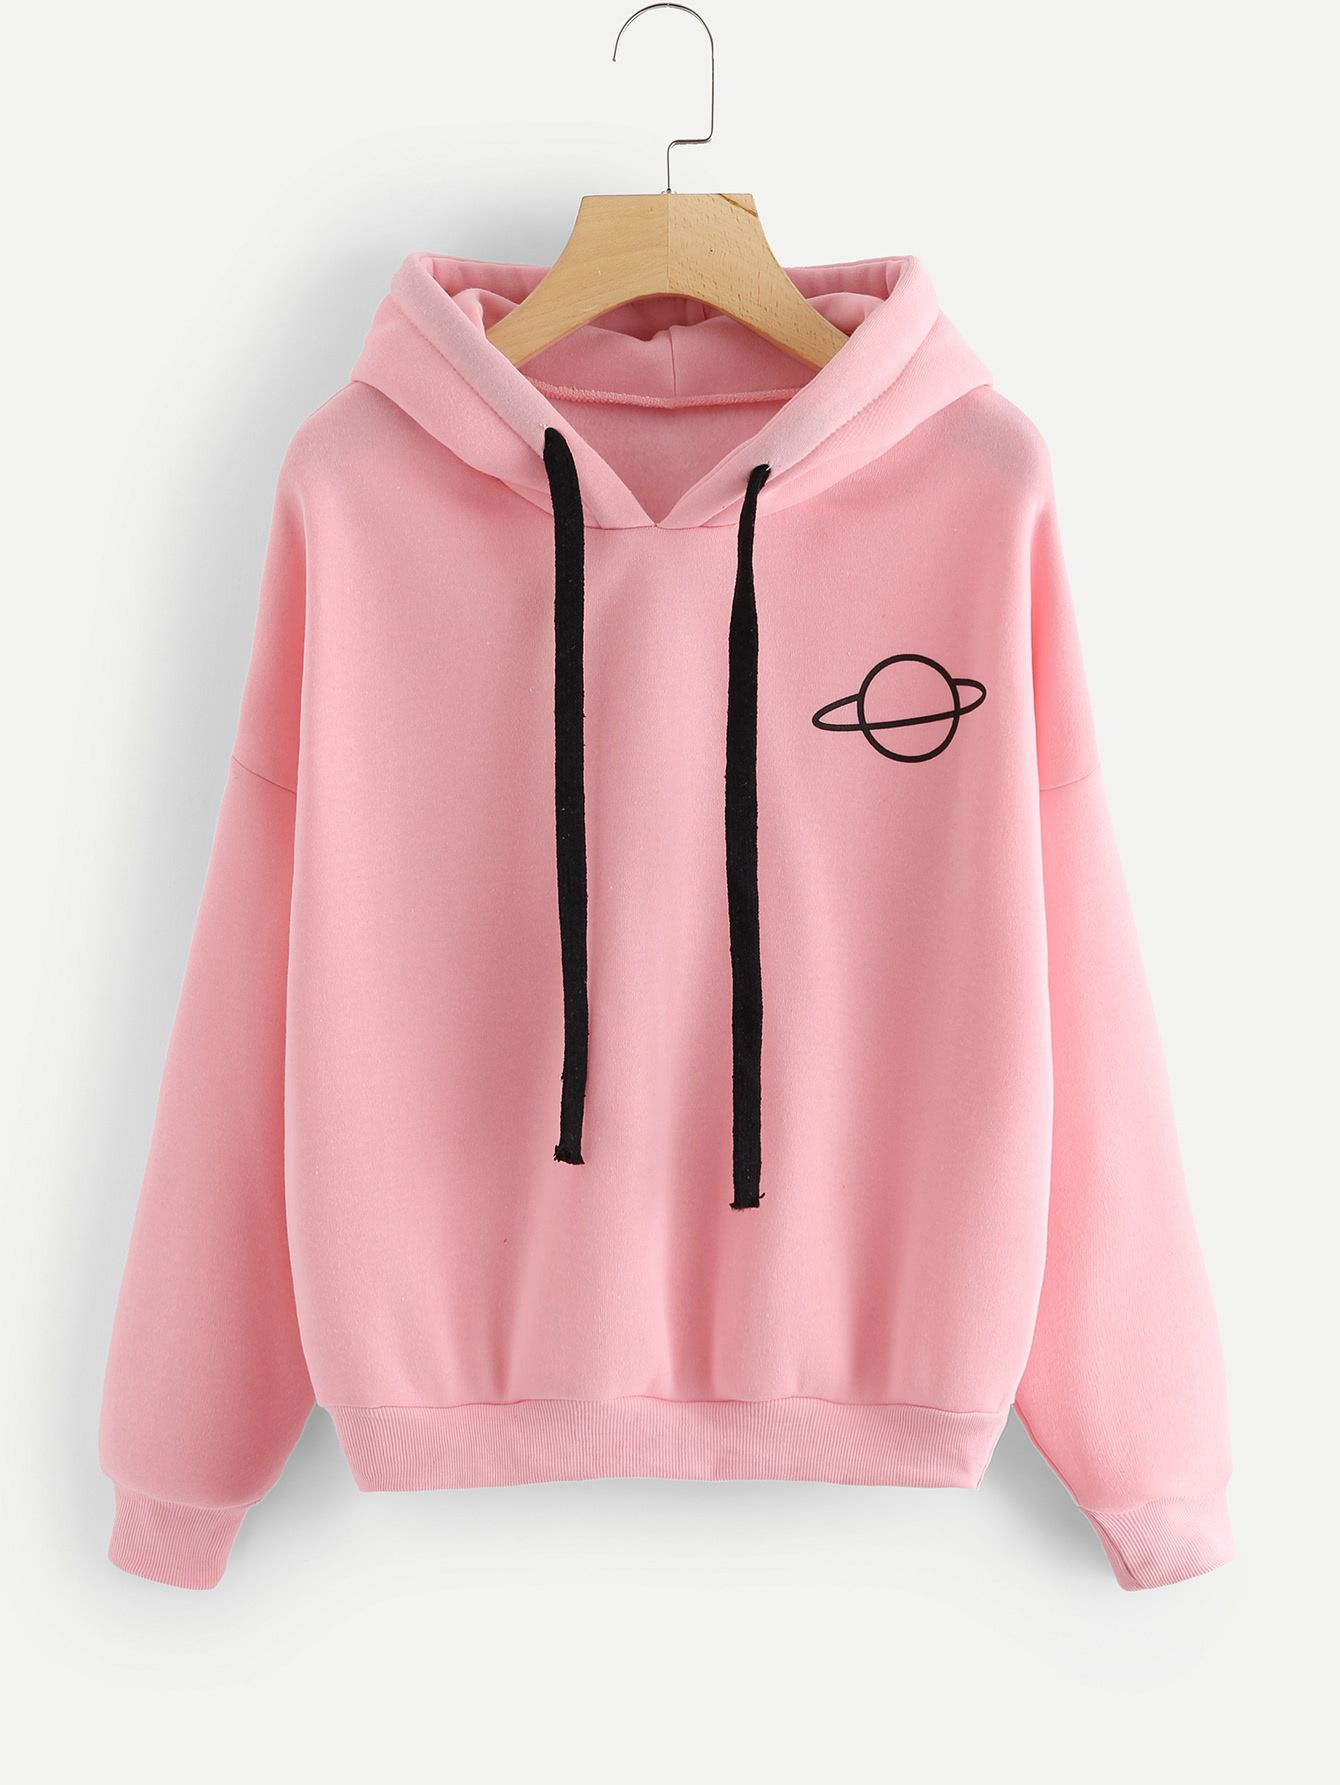 4fe223fcd1 Shop Planet Print Drop Shoulder Hoodie online. SheIn offers Planet Print  Drop Shoulder Hoodie & more to fit your fashionable needs.